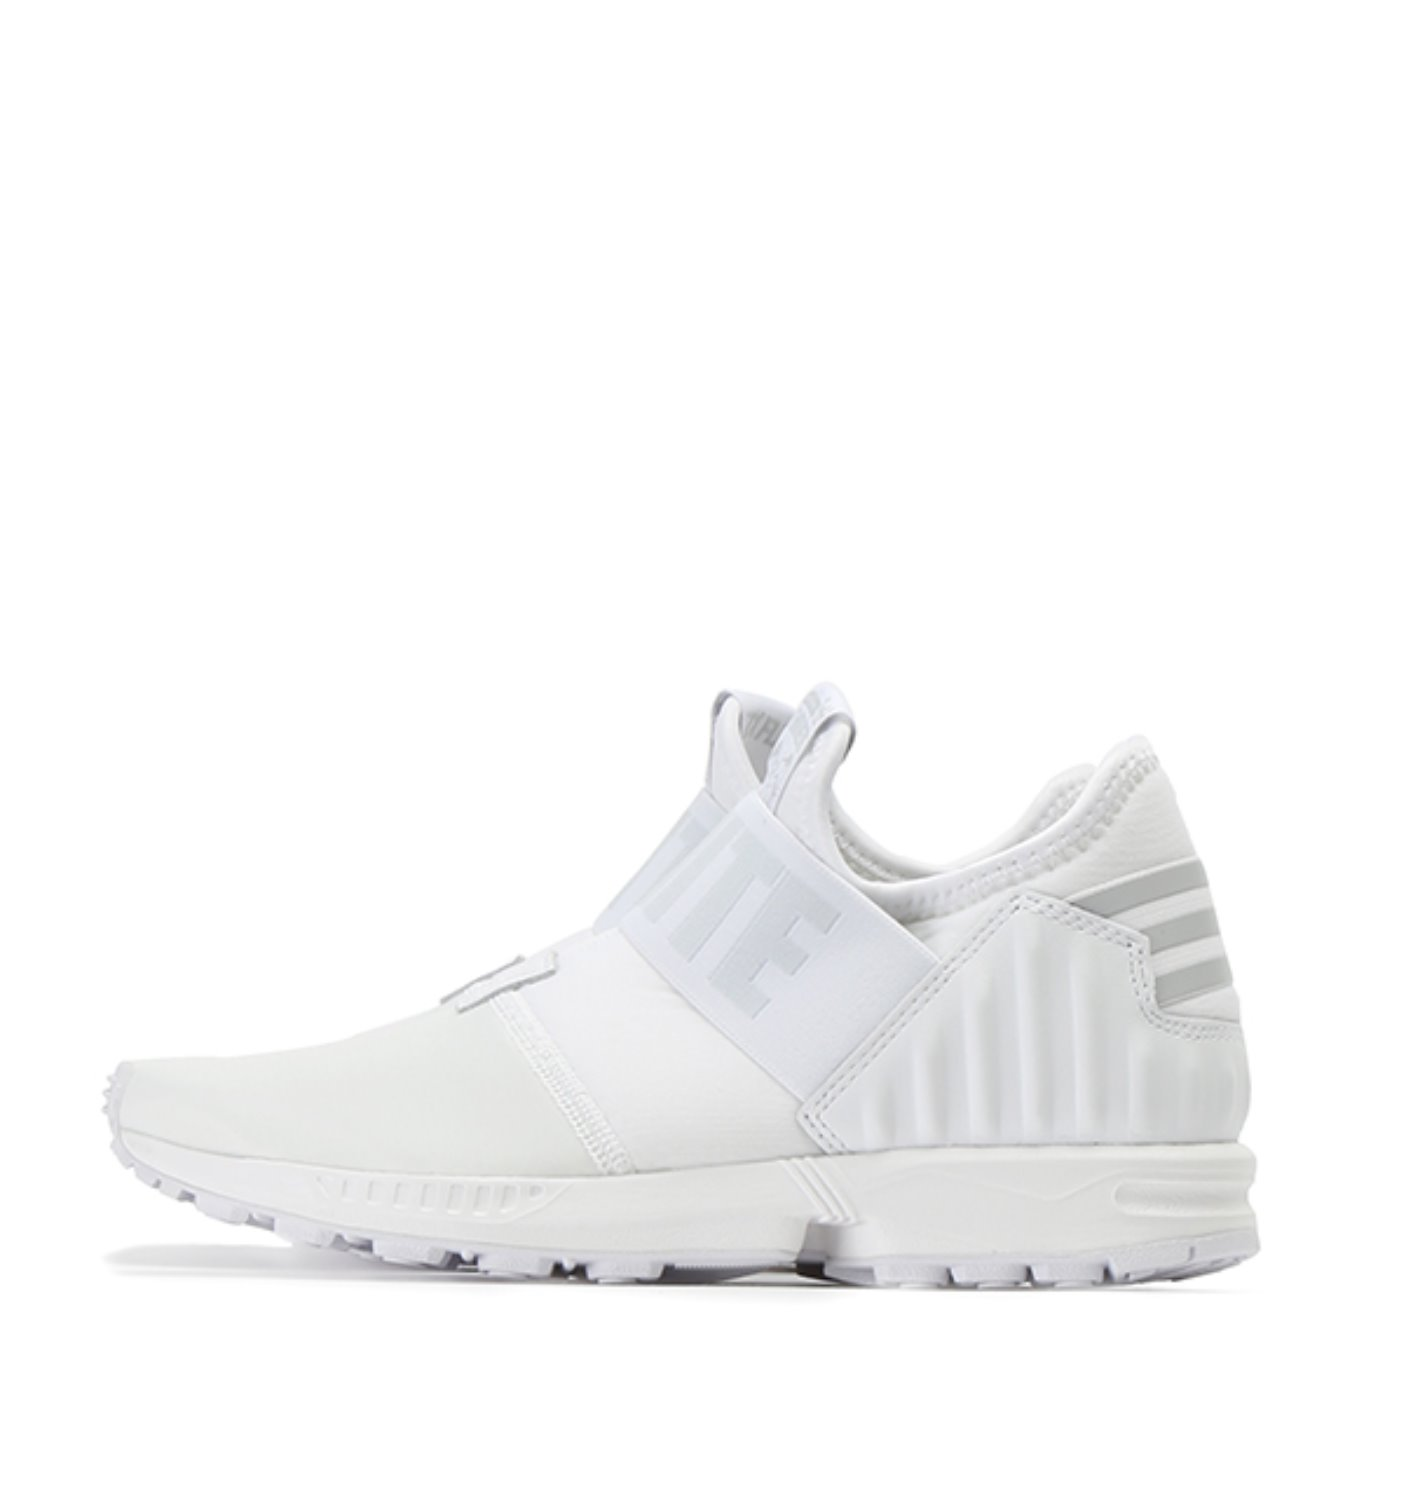 WM X ADIDAS ORIGINALS [ZX FLUX PLUS] WHITE